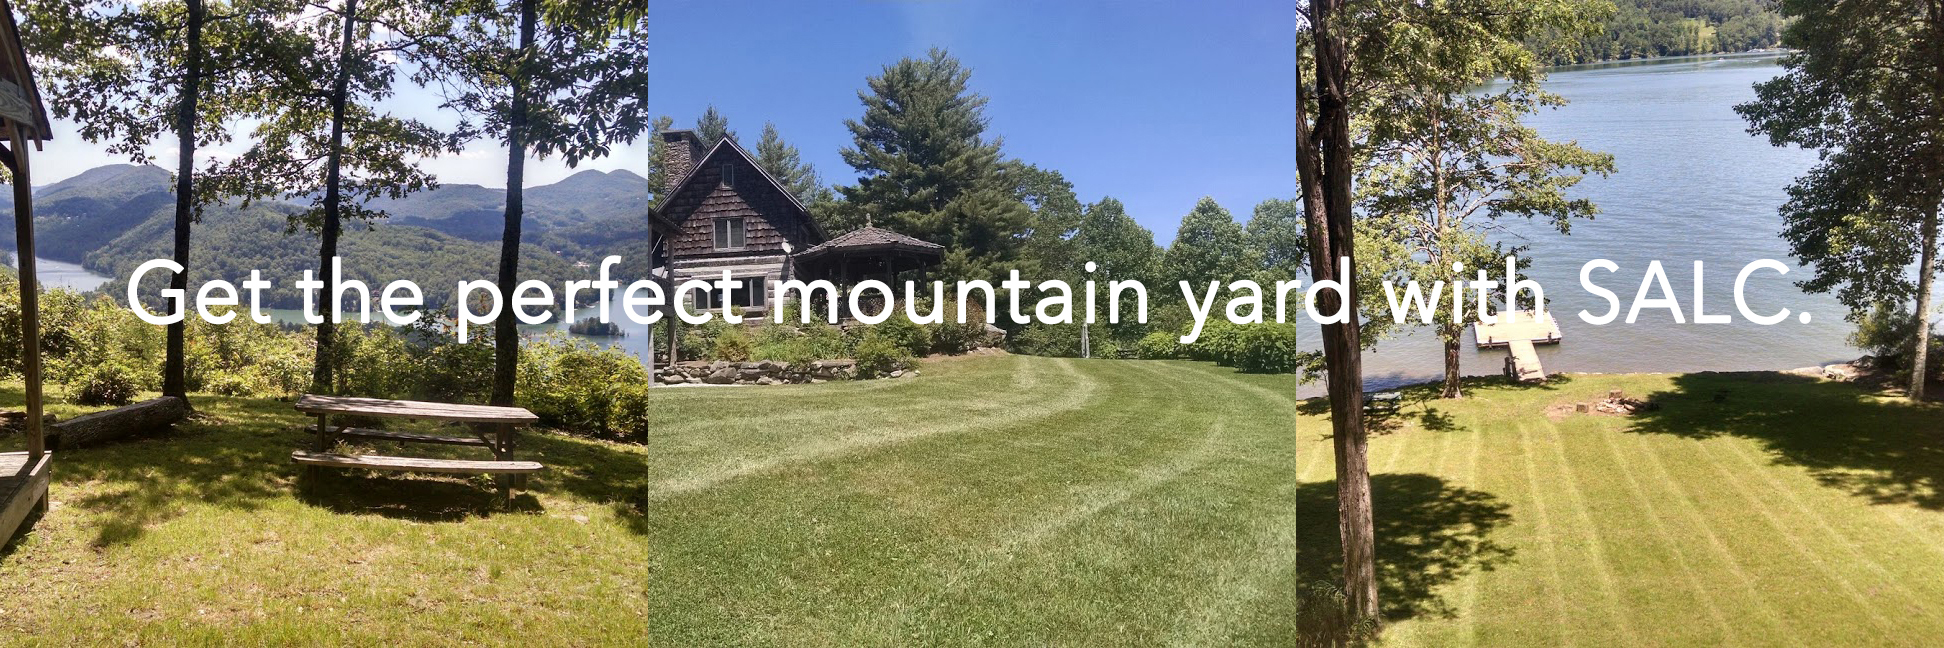 Get the perfect mountain yard with SALC